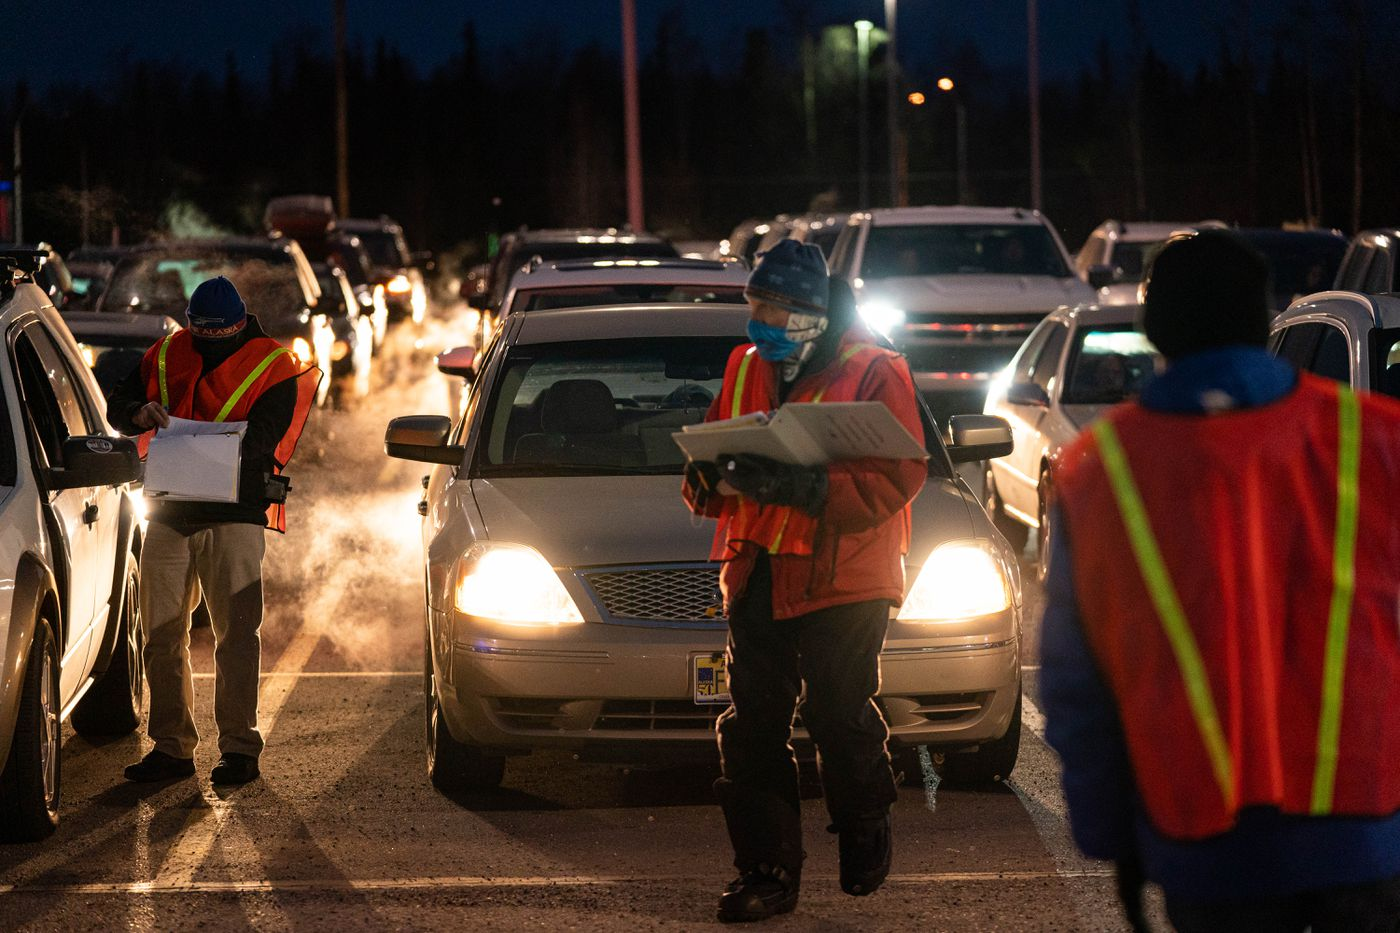 NOVEMBER 5. Volunteers register households and direct traffic at an emergency food distribution program run by the Food Bank of Alaska at the former Sam's Club at Tikhatnu Commons in Anchorage. (Loren Holmes / ADN)